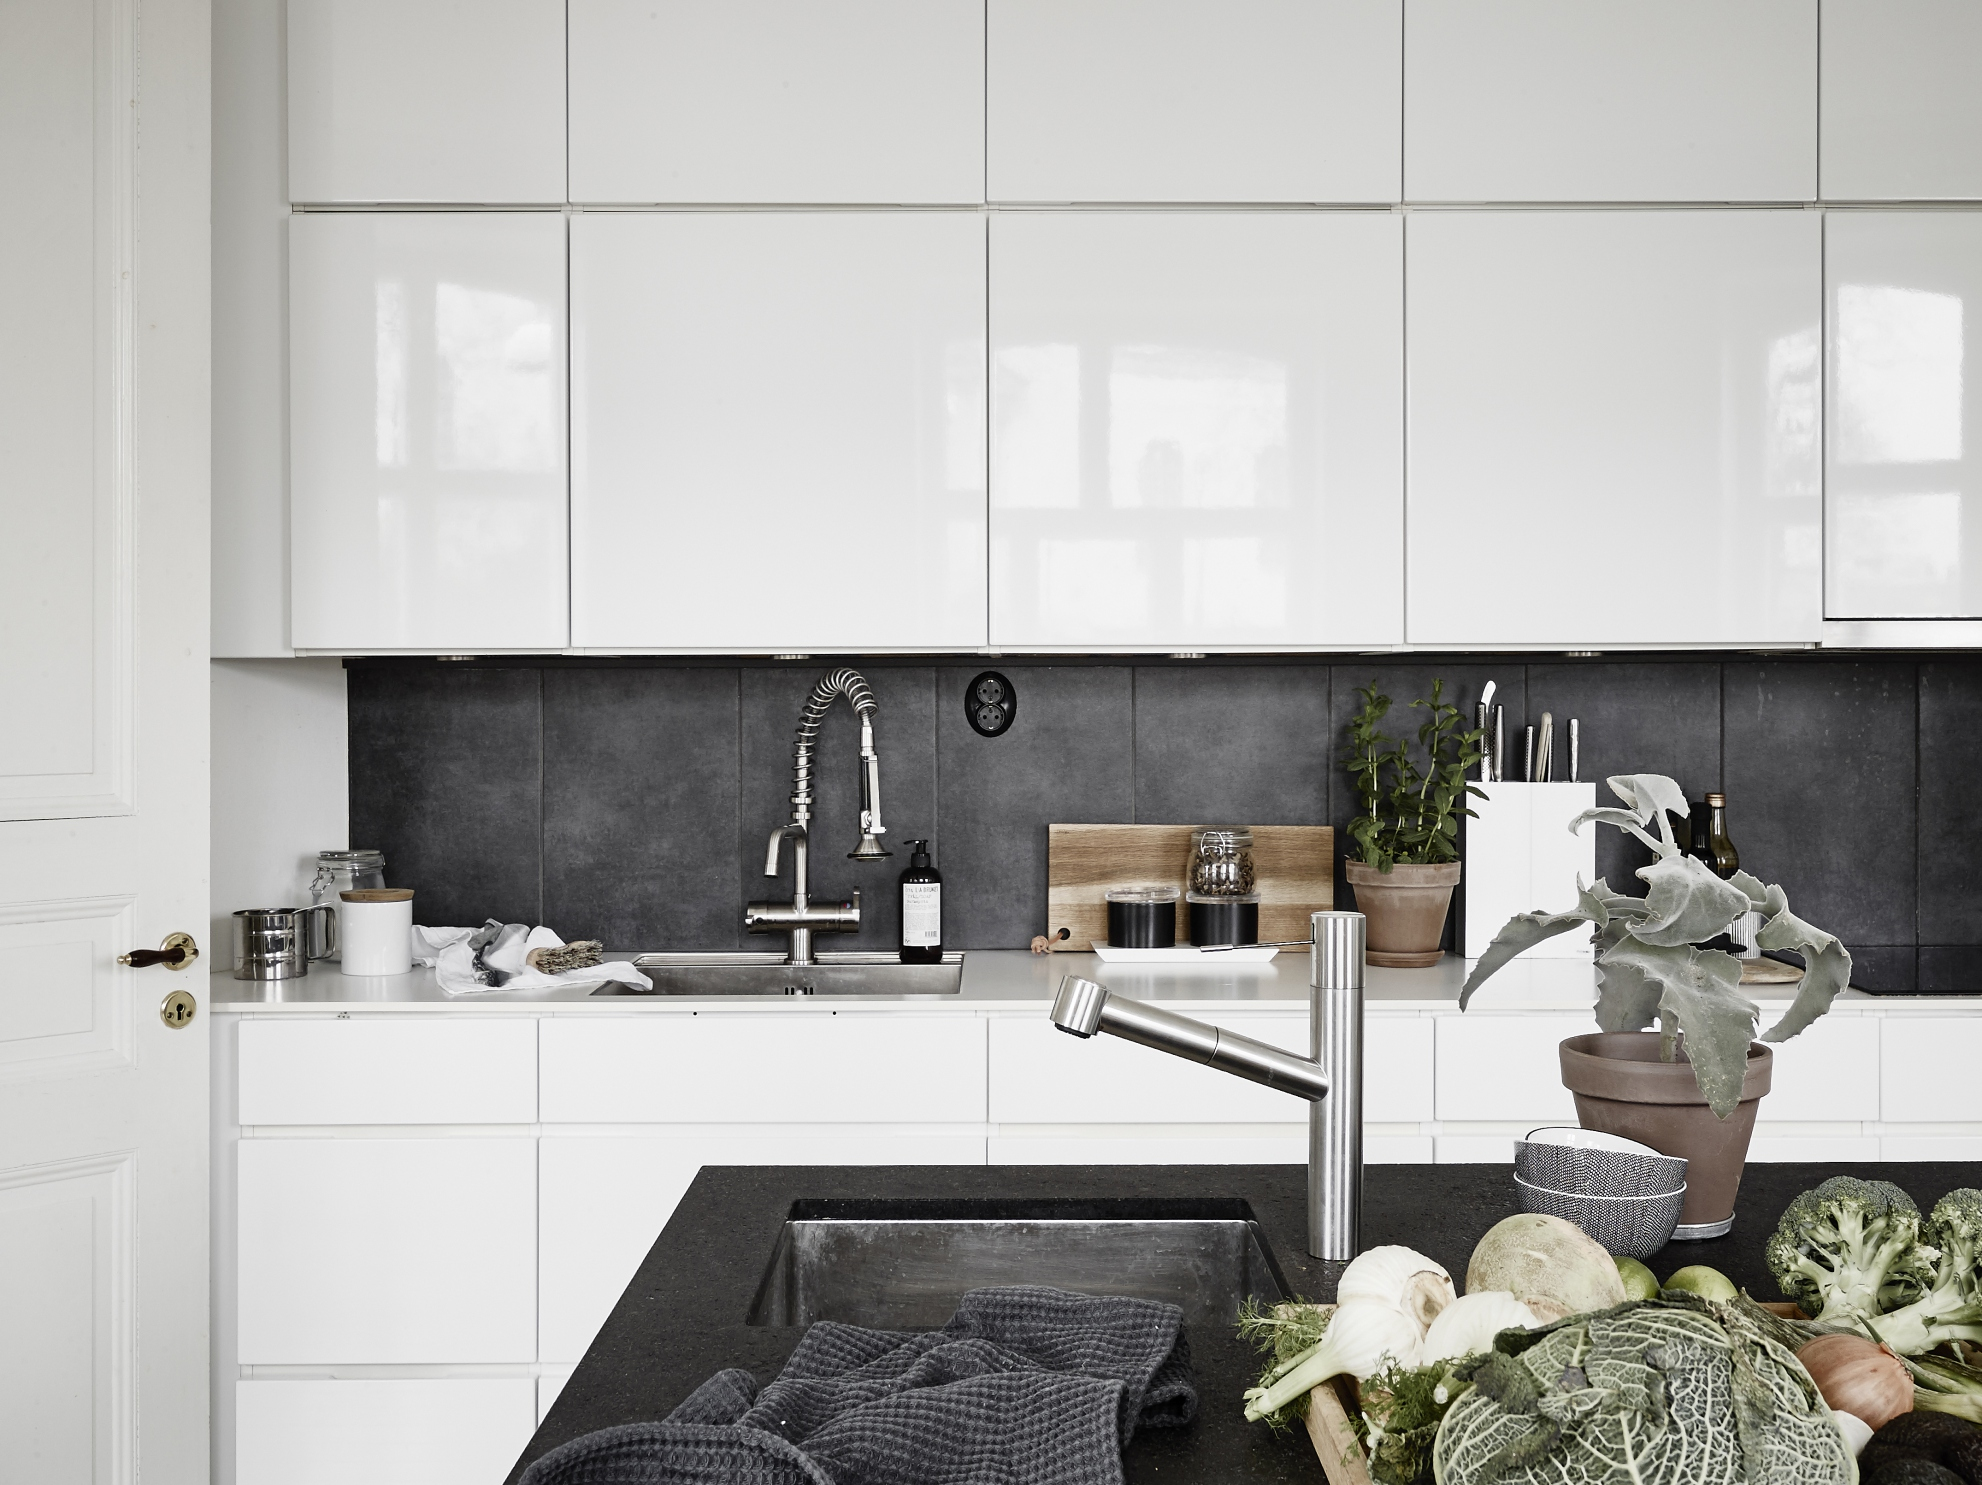 Small Apartment Kitchen Small Apartment With A Big Kitchen Island Coco Lapine Designcoco